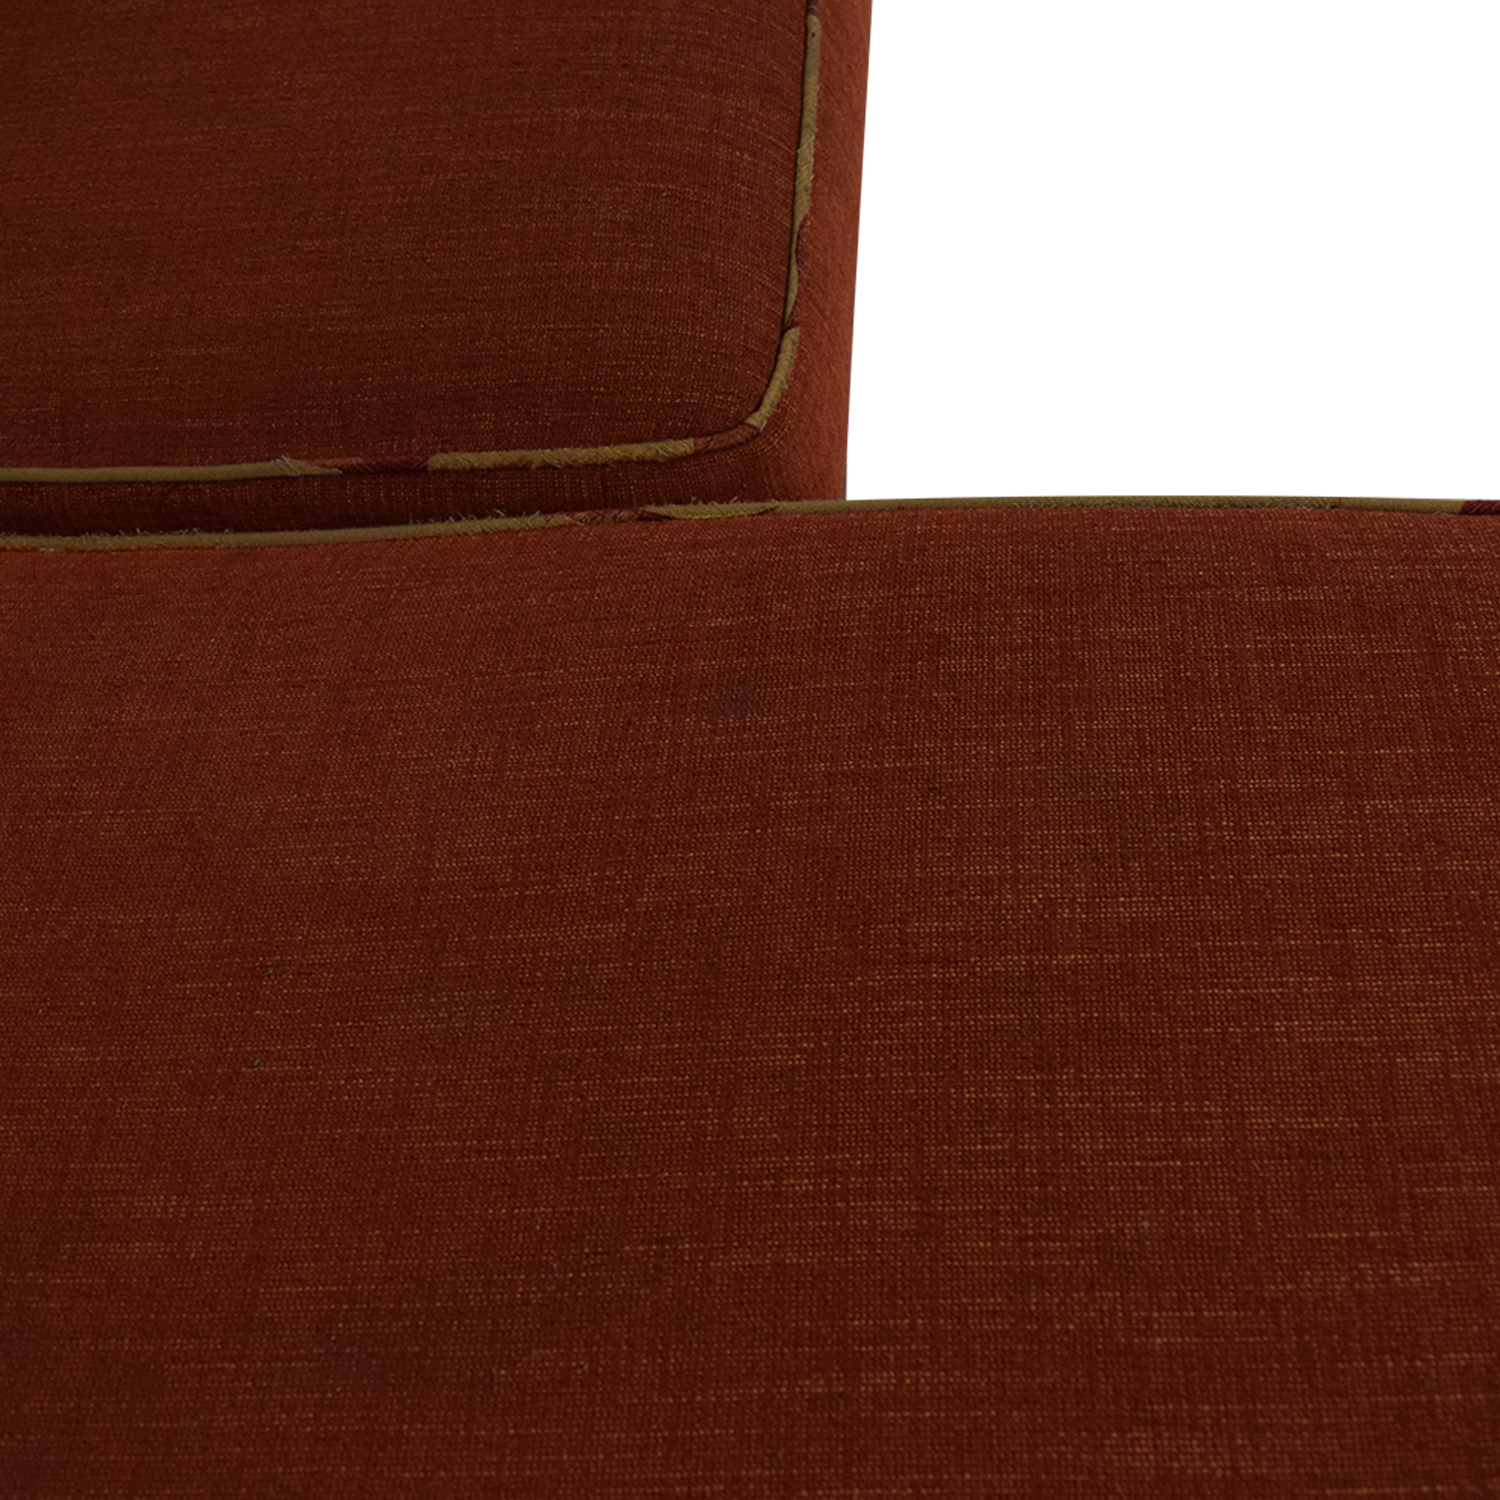 buy Red Sectional With Chaise and Floral Pillows